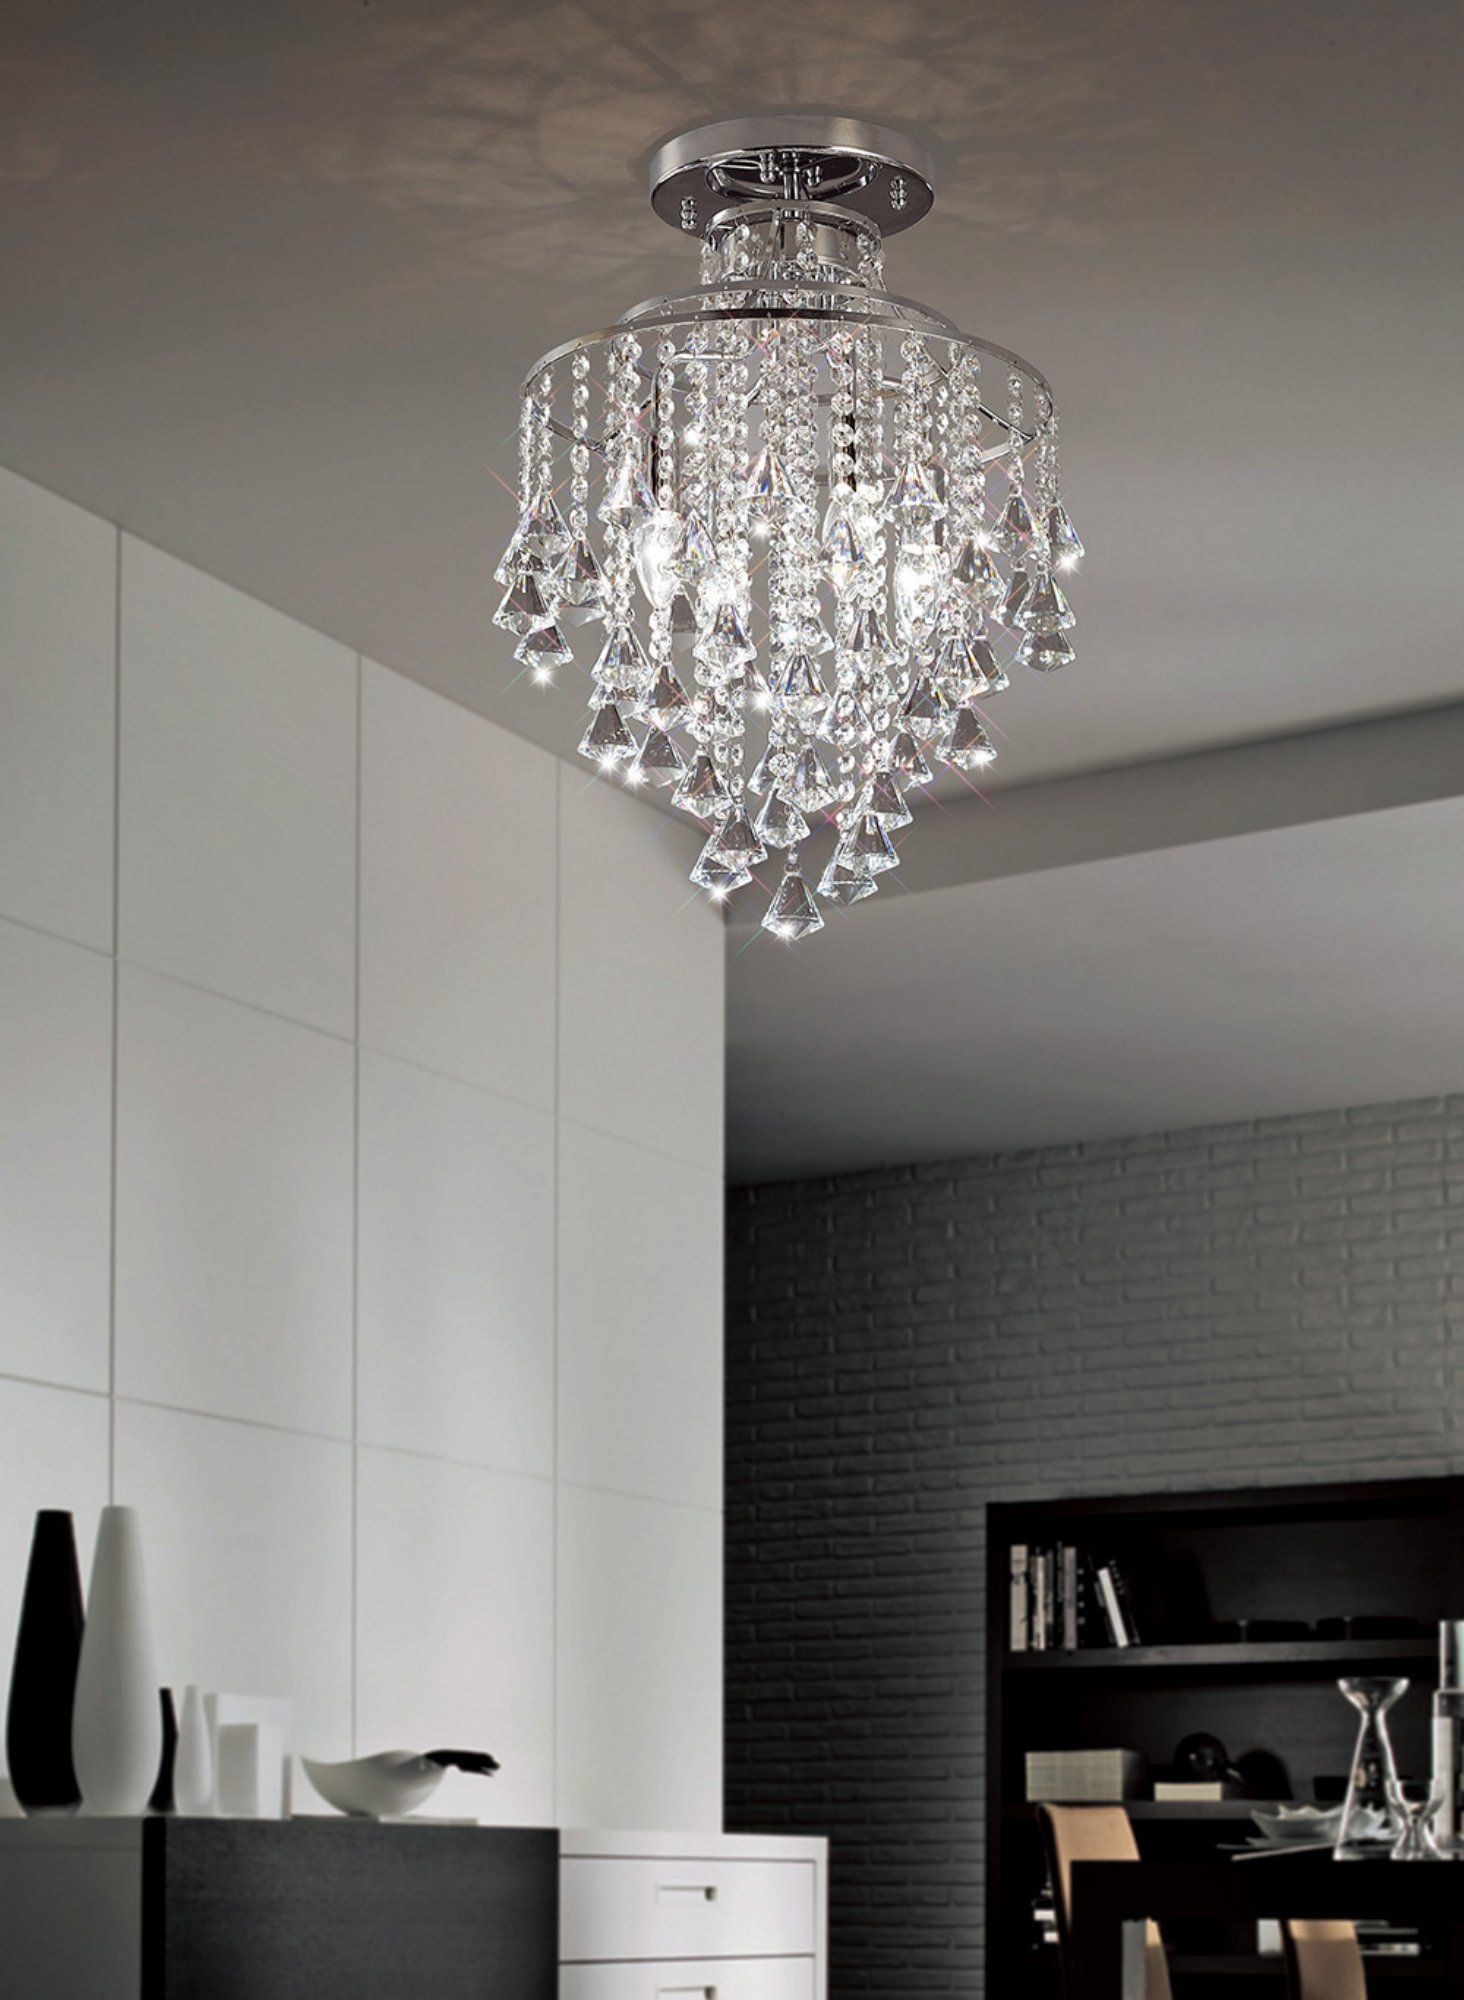 Ceiling Chandelierdiningroomlowceiling Chrome Crystal Fitting Frame Polished S In 2020 With Images Low Ceiling Chandelier Dining Room Chandelier Crystal Chandelier Bedroom